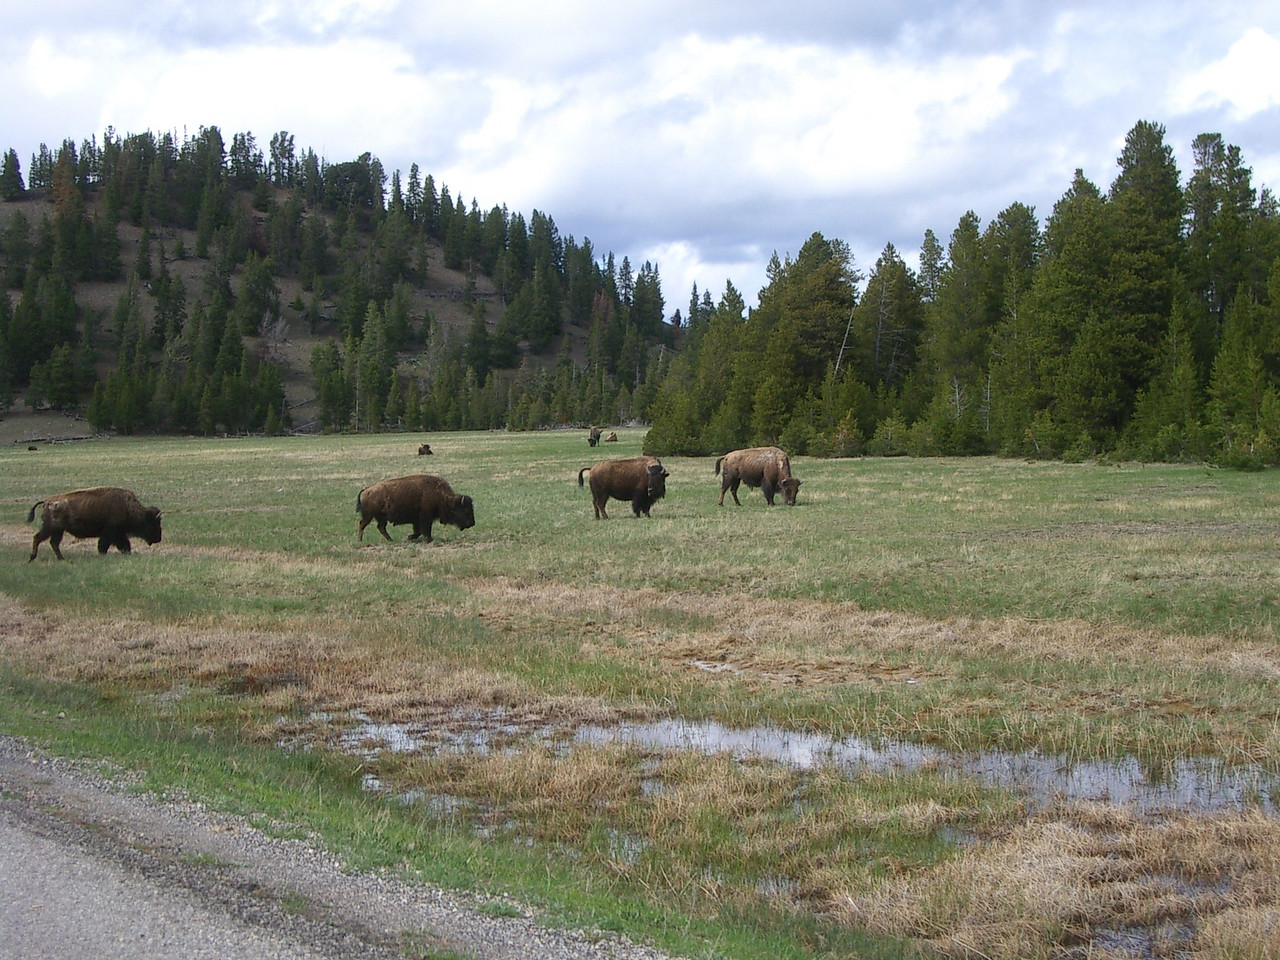 In a couple of pastures, there were herds of bison.